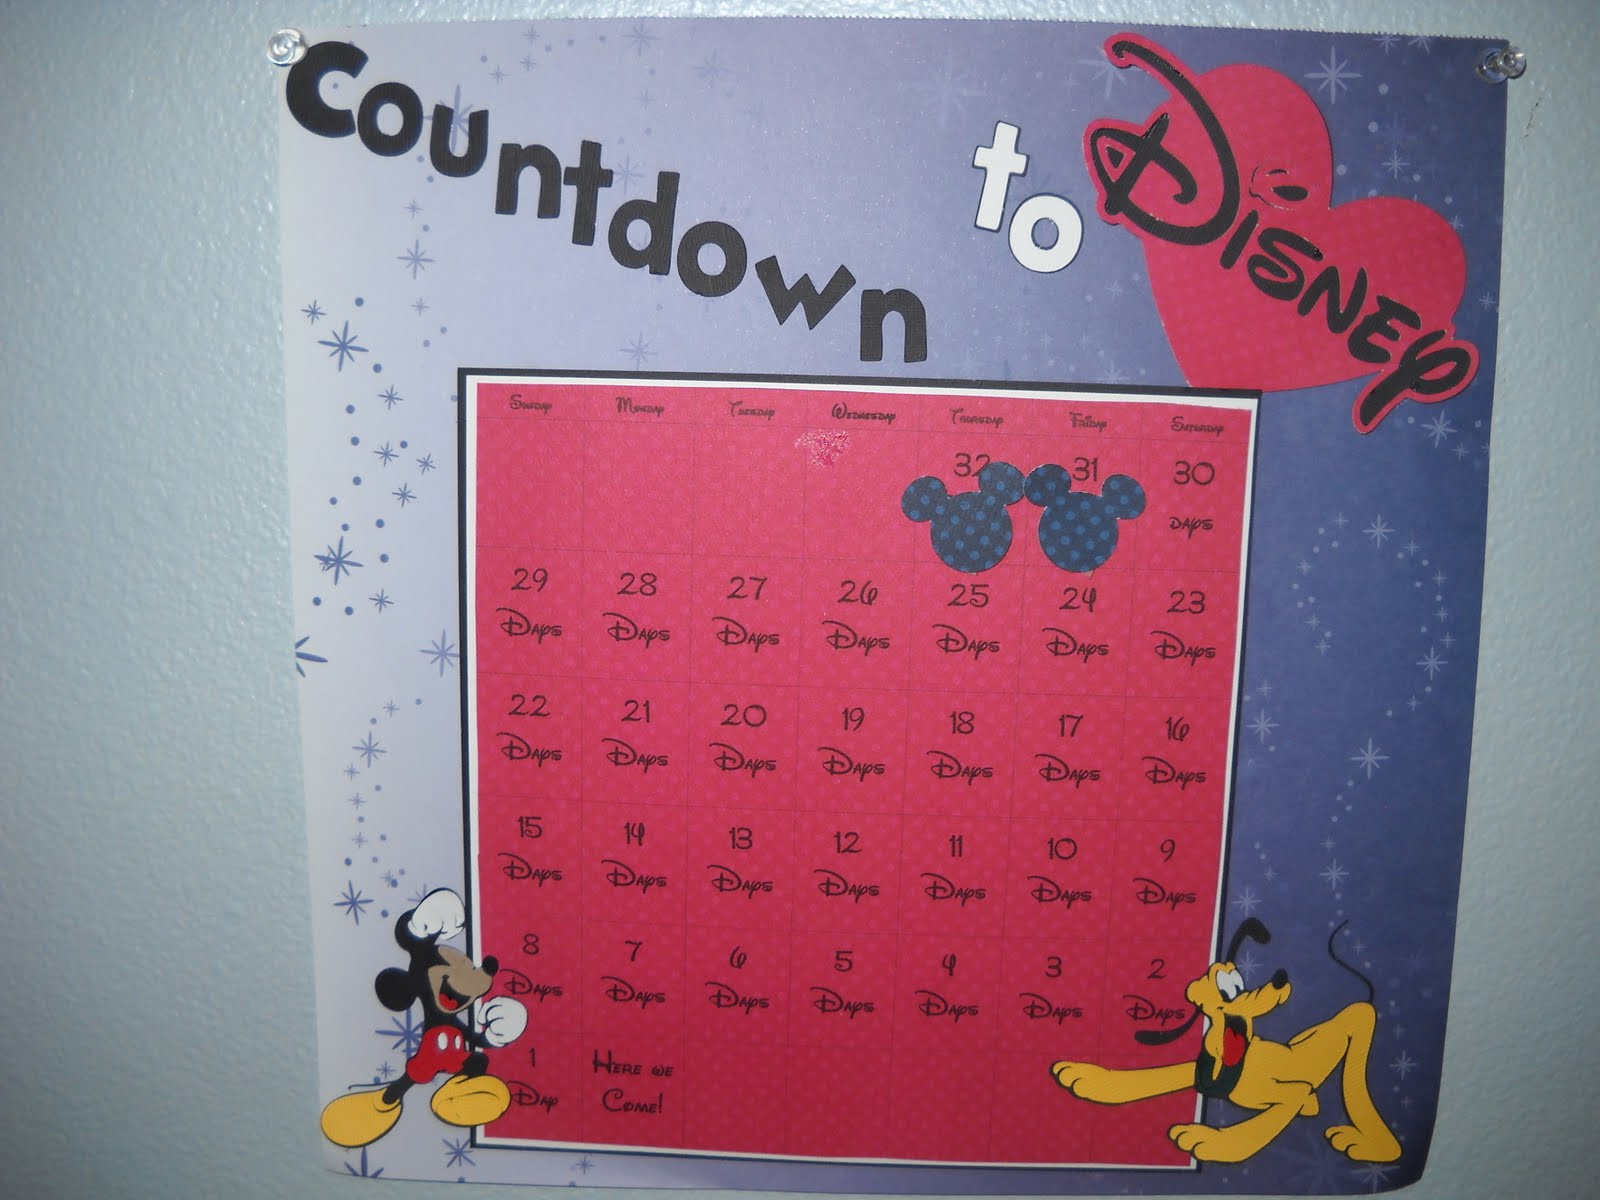 Disney countdown template search results calendar 2015 for Countdown chart template